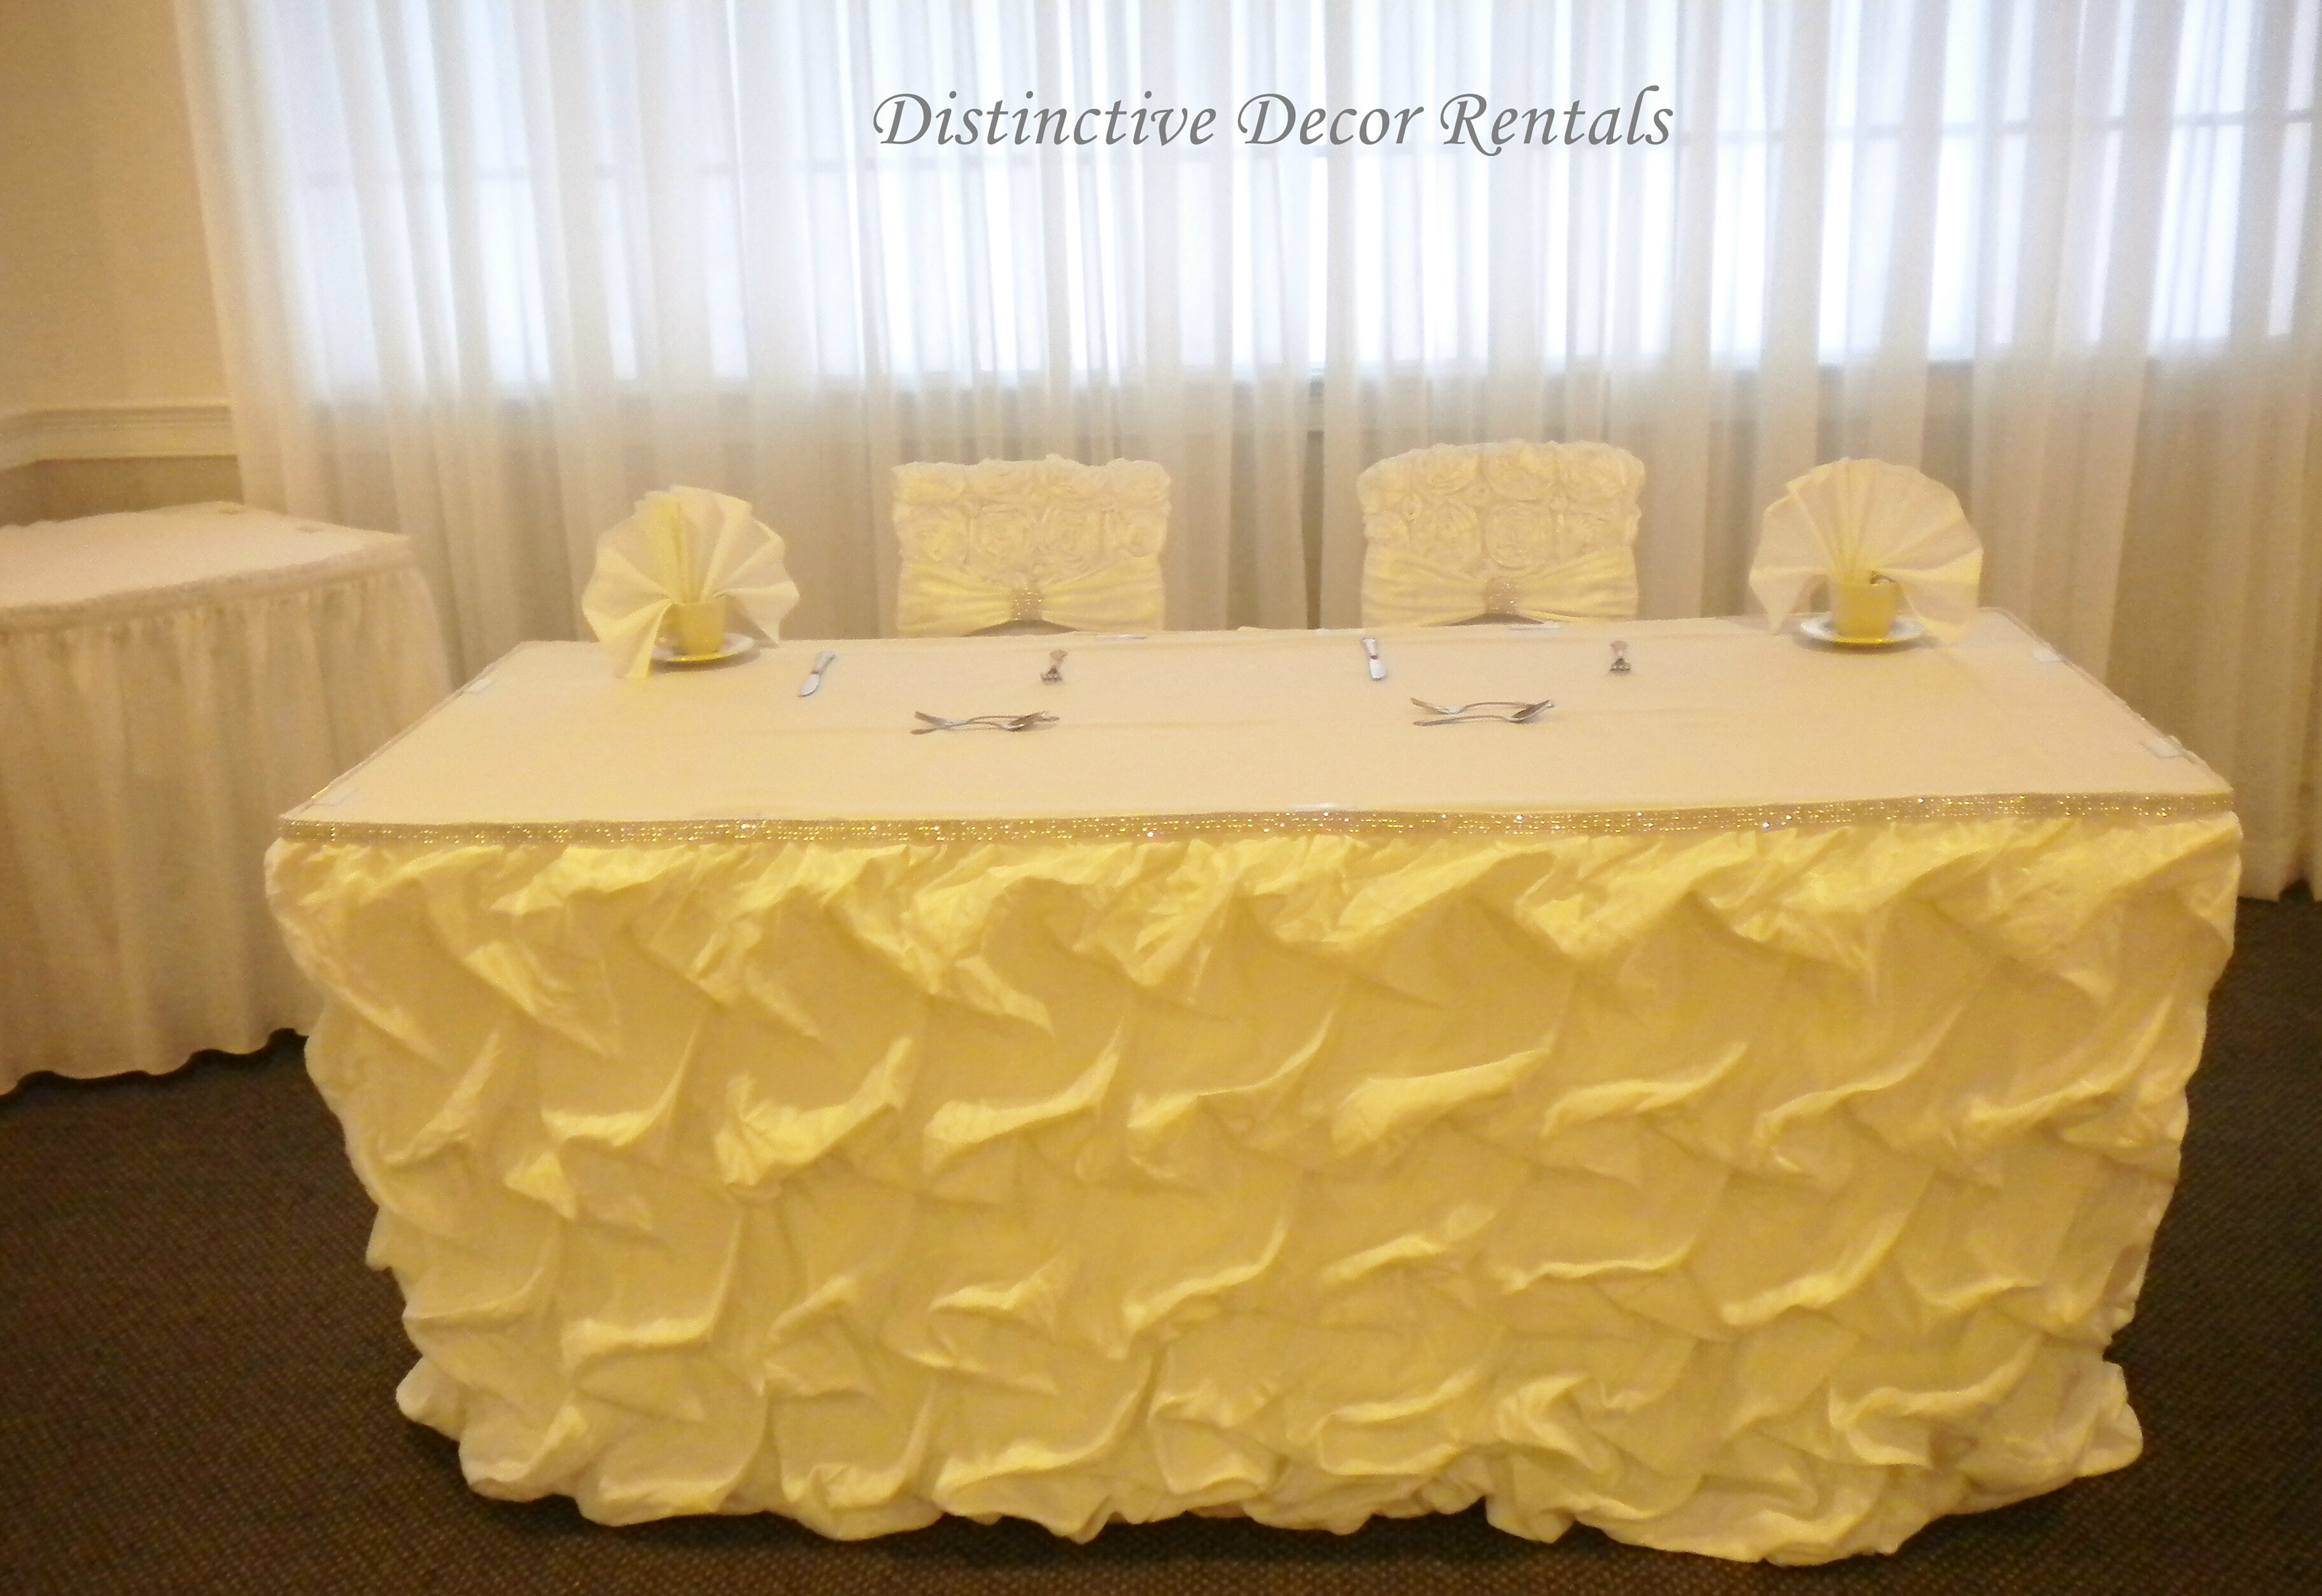 chair cover rentals boston ma jobri kneeling distinctive decor for all your parties and events